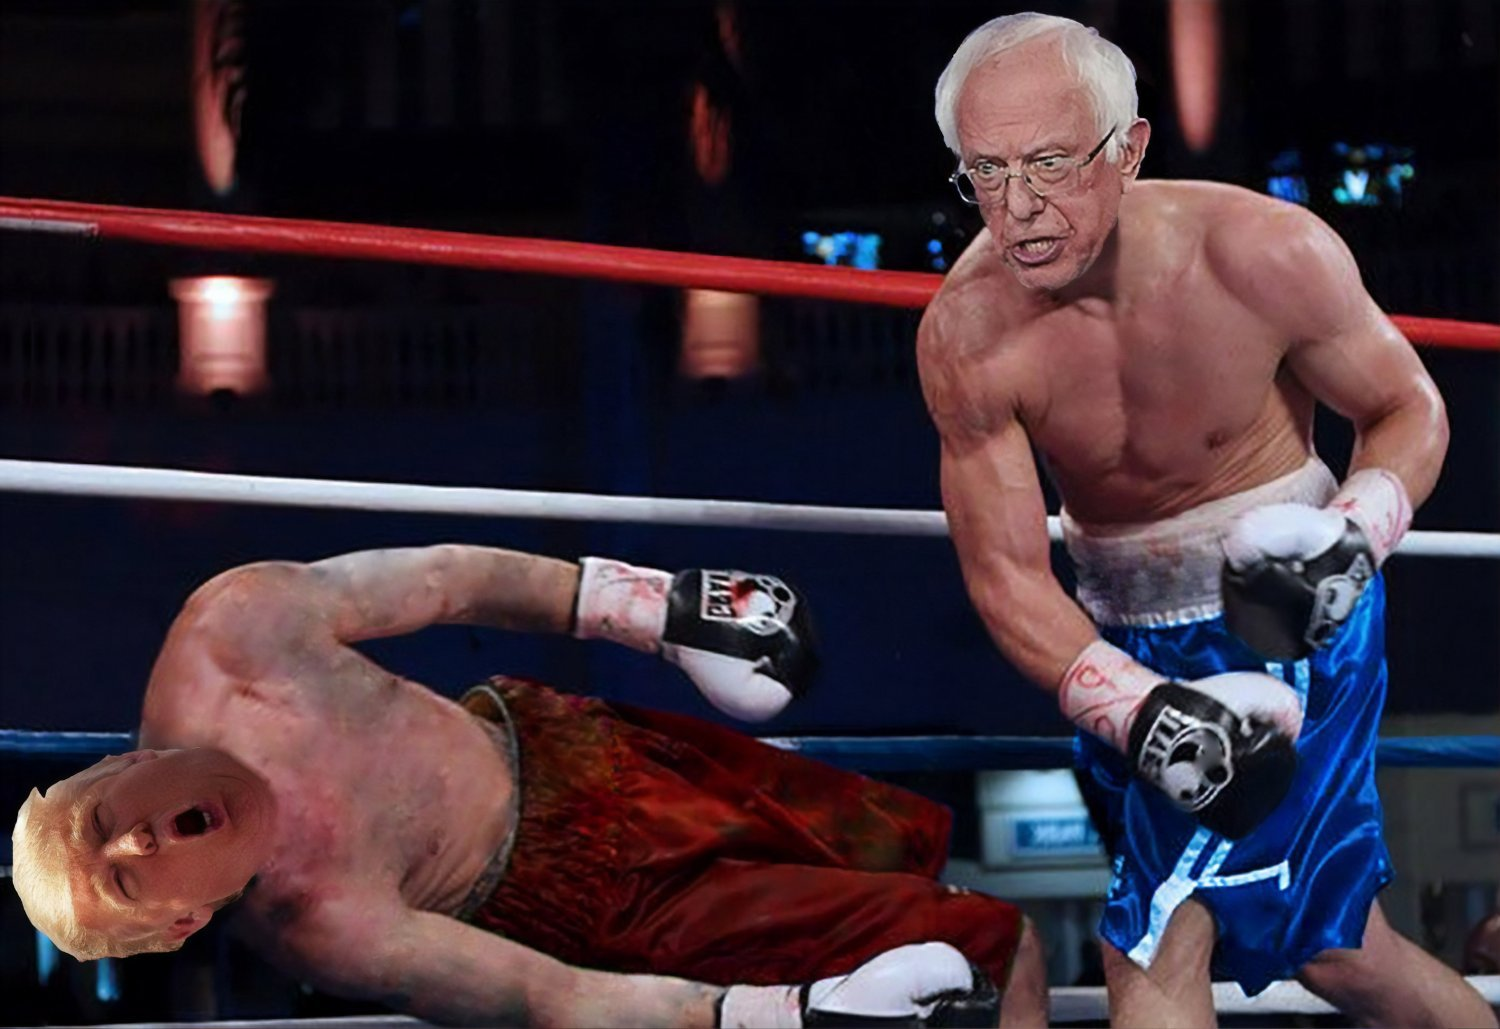 Bernie Sanders Flag 3x5 FT Fighting Knock Out Trump Flag